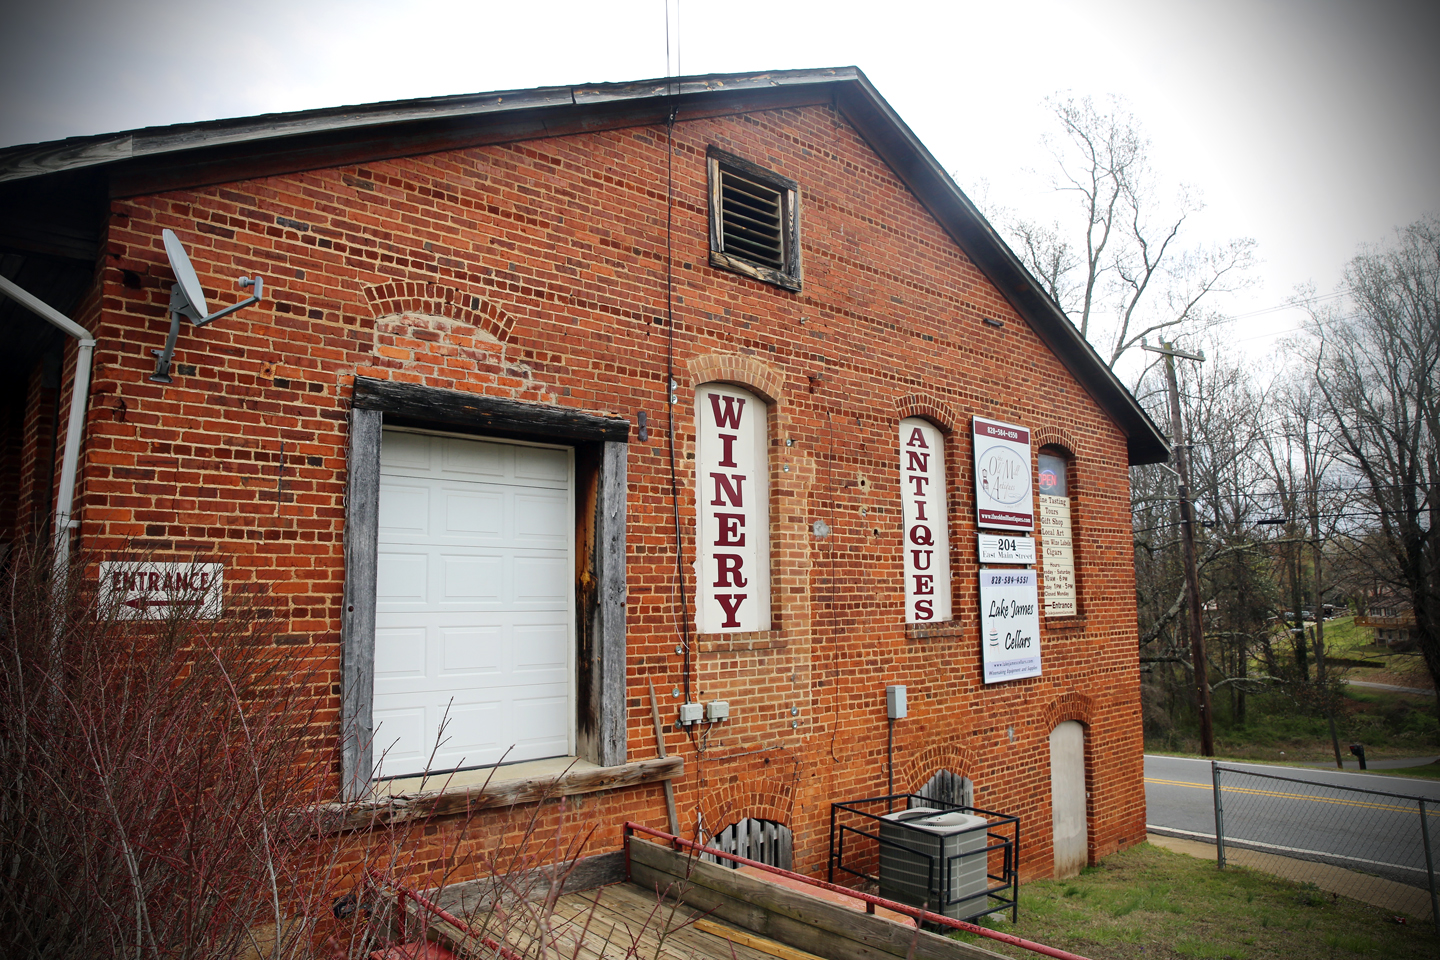 Lake James Cellars is located inside an old textile mill building